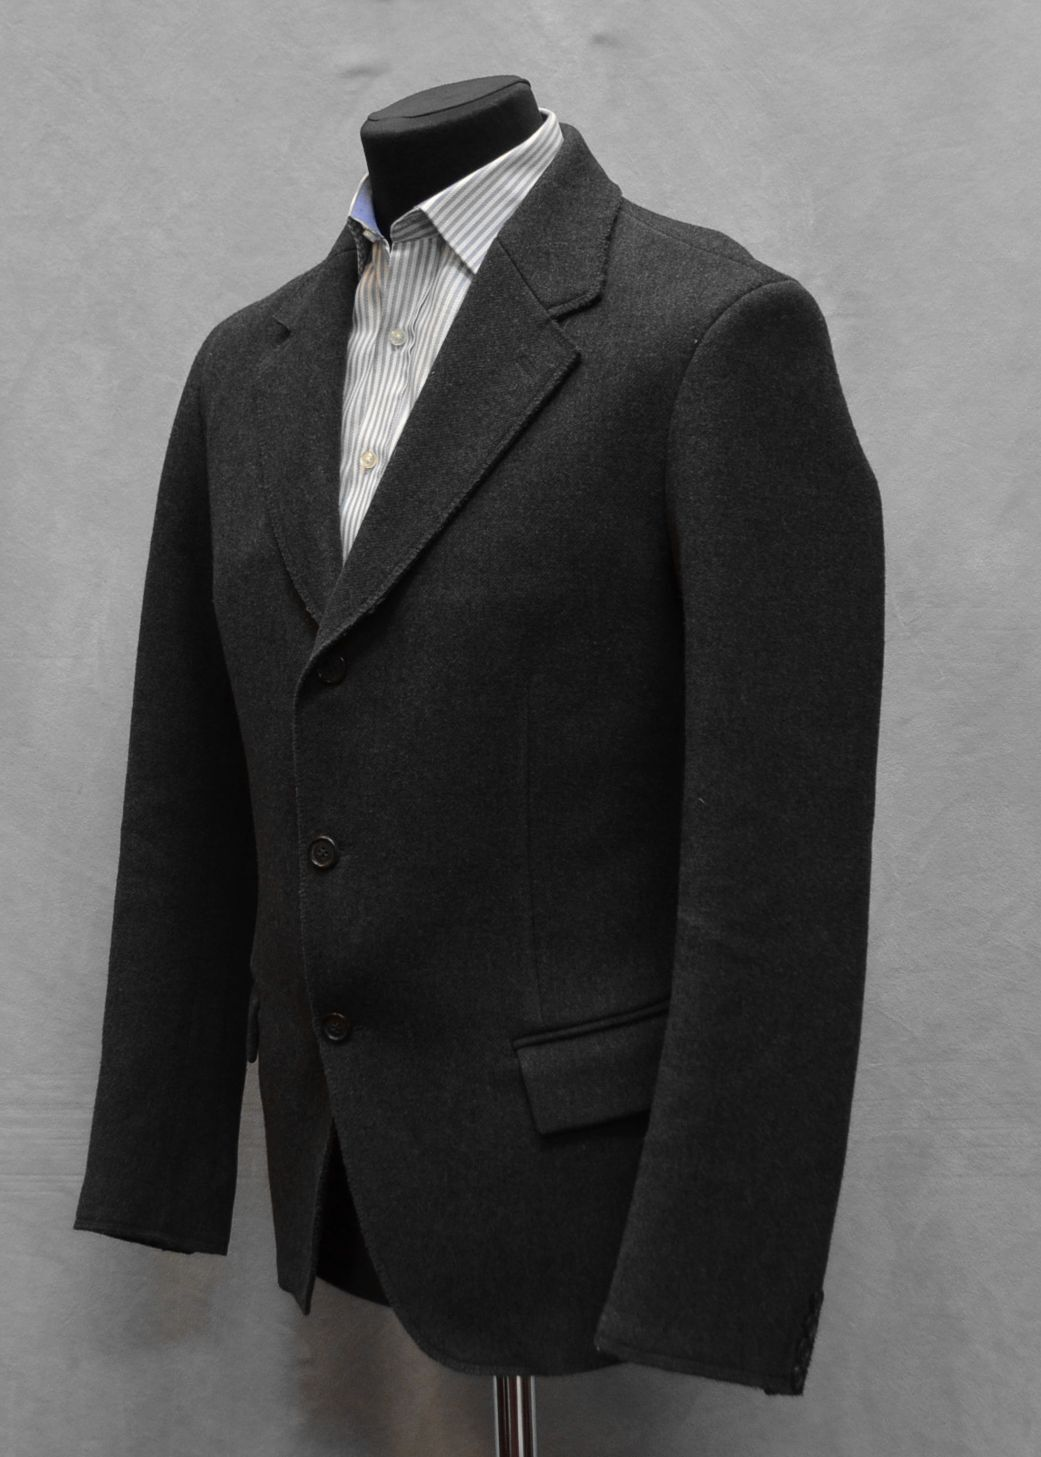 G0 NEW PRADA Charcoal Wool Single Breasted 3 Button Slim Fit Blazer Size 52